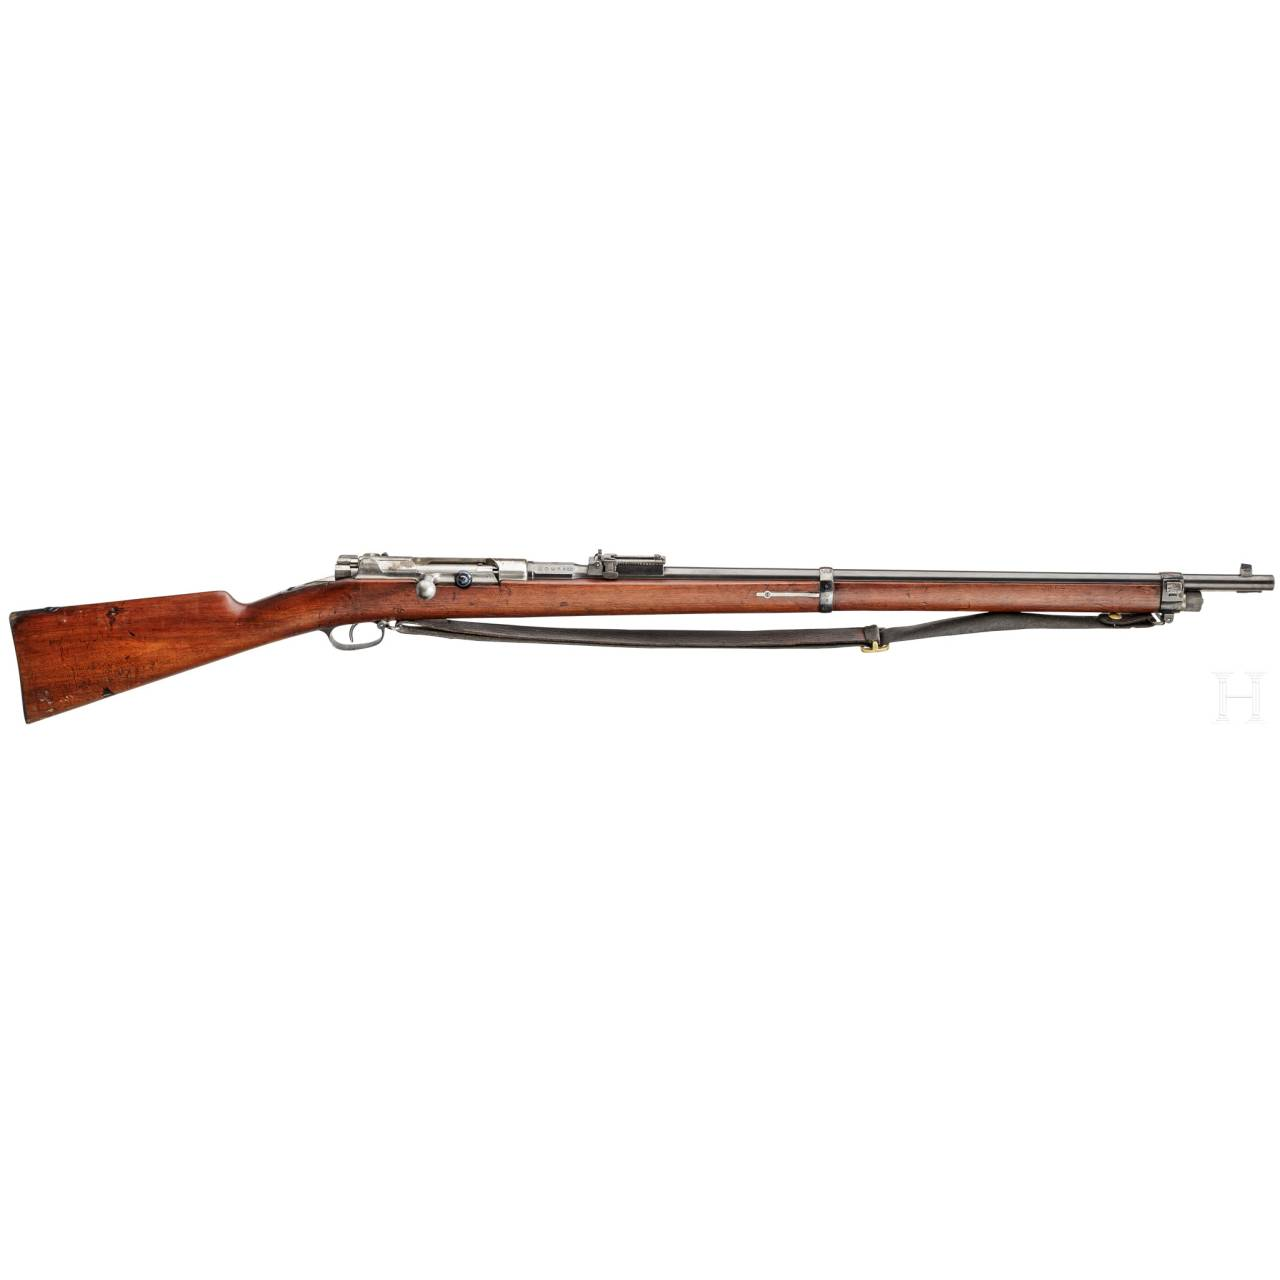 A Mauser Infantry Rifle Model 1887